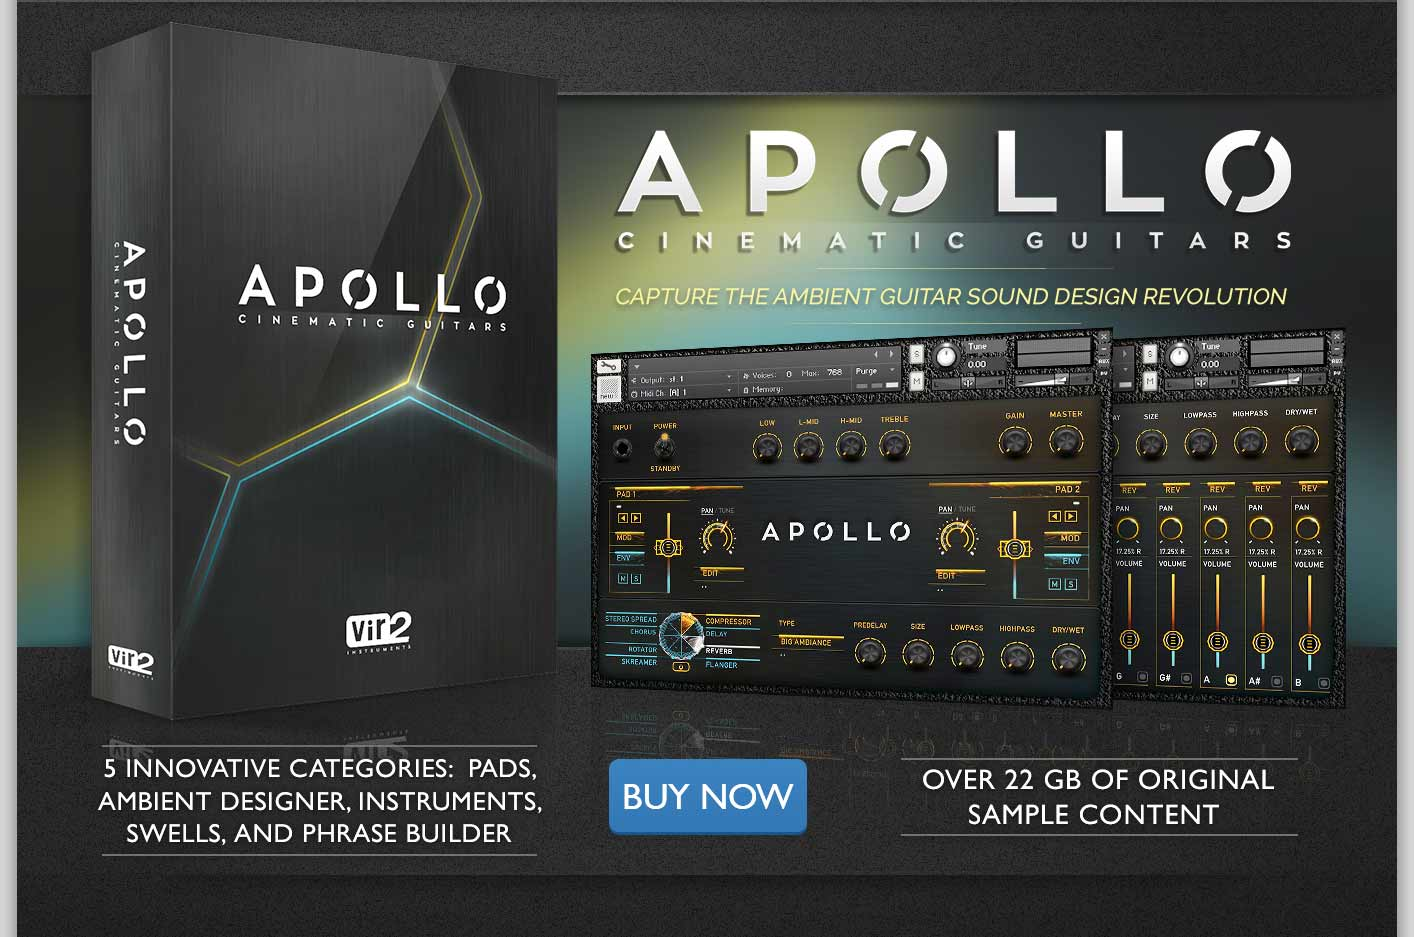 Apollo Cinematic Guitars